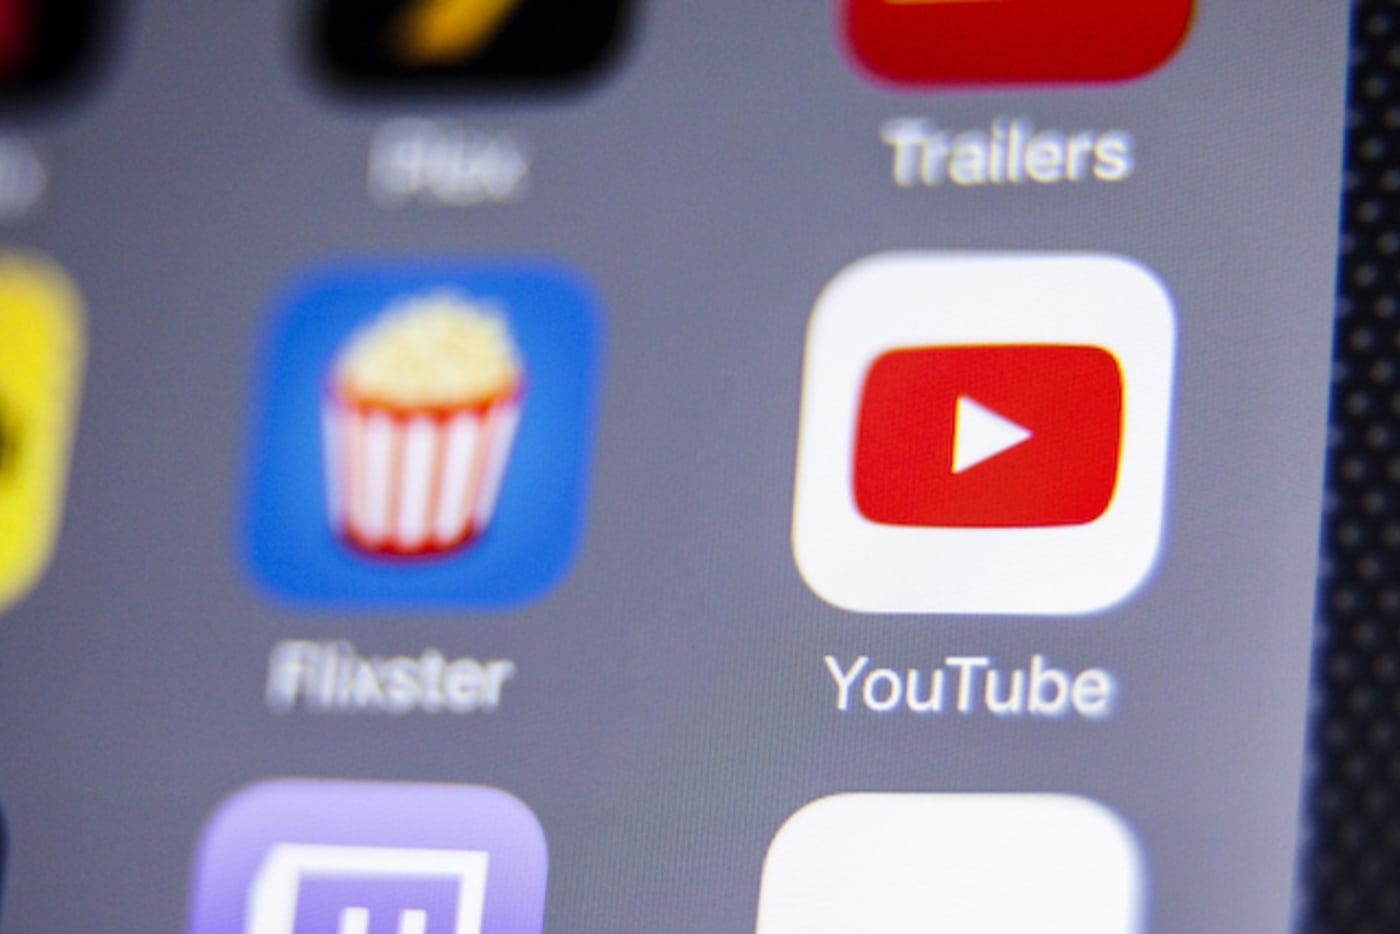 This is a picture of YouTube.